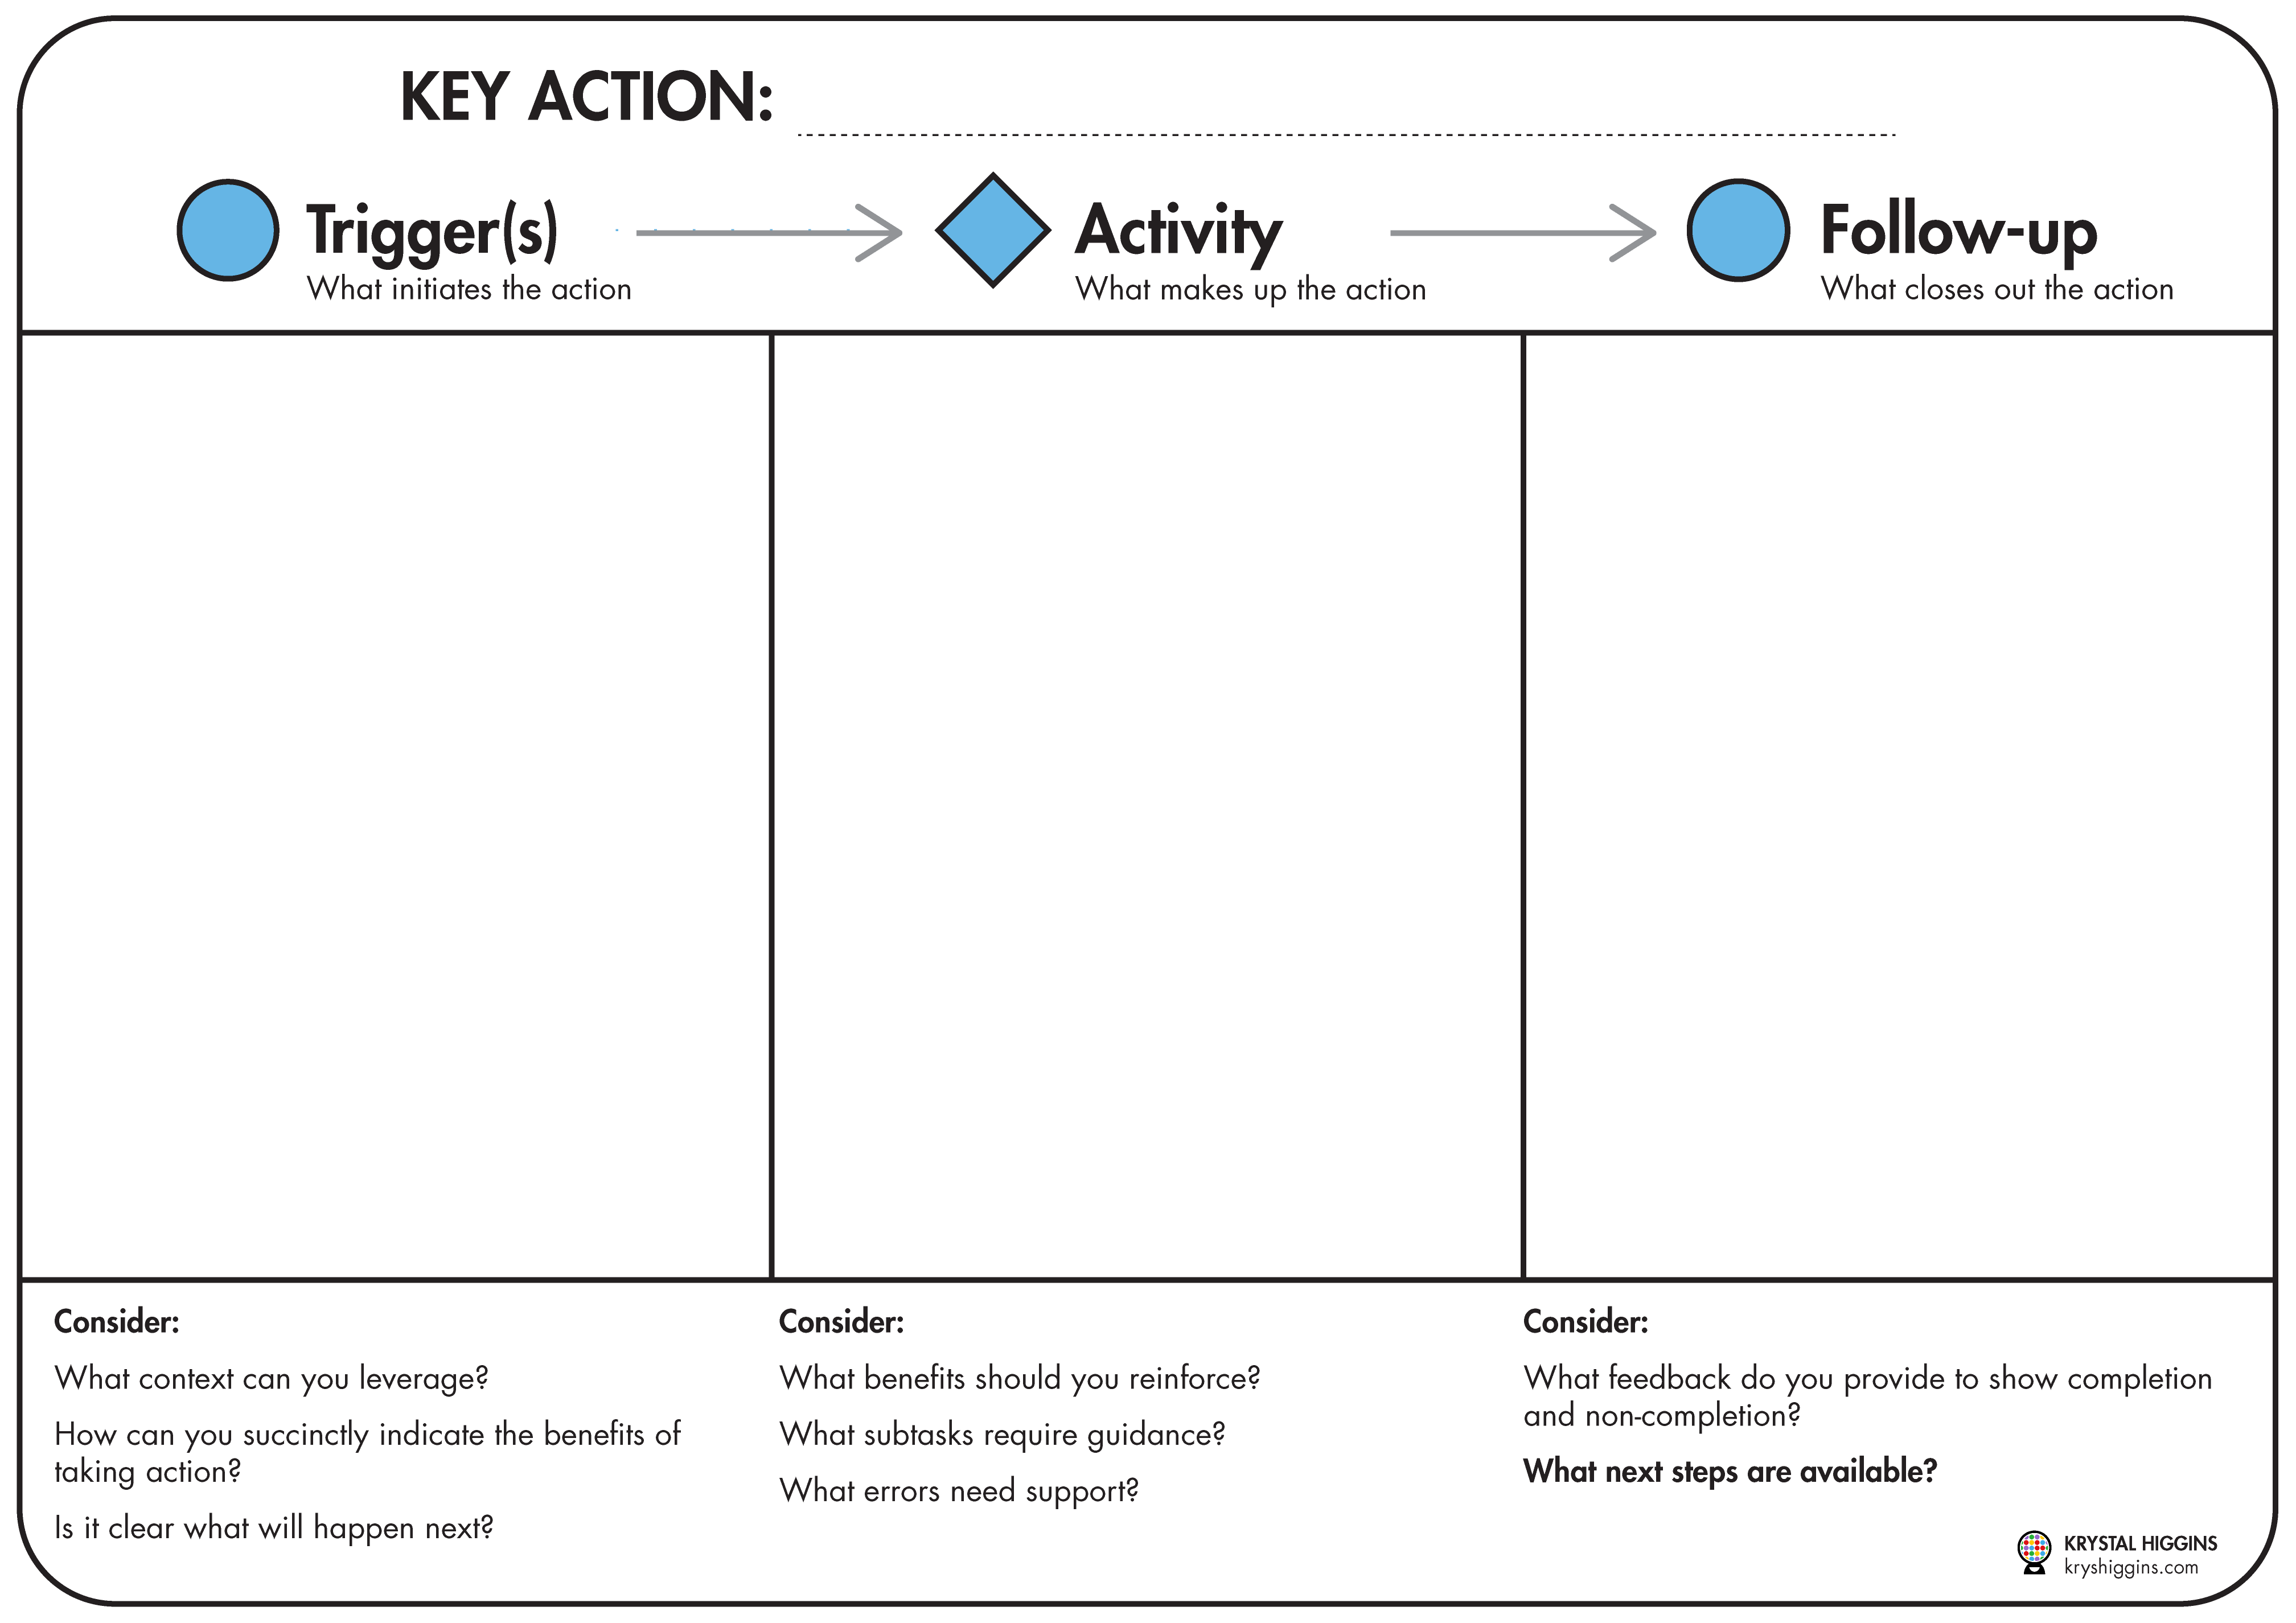 Example image of a 3-panel storyboard template for key actions